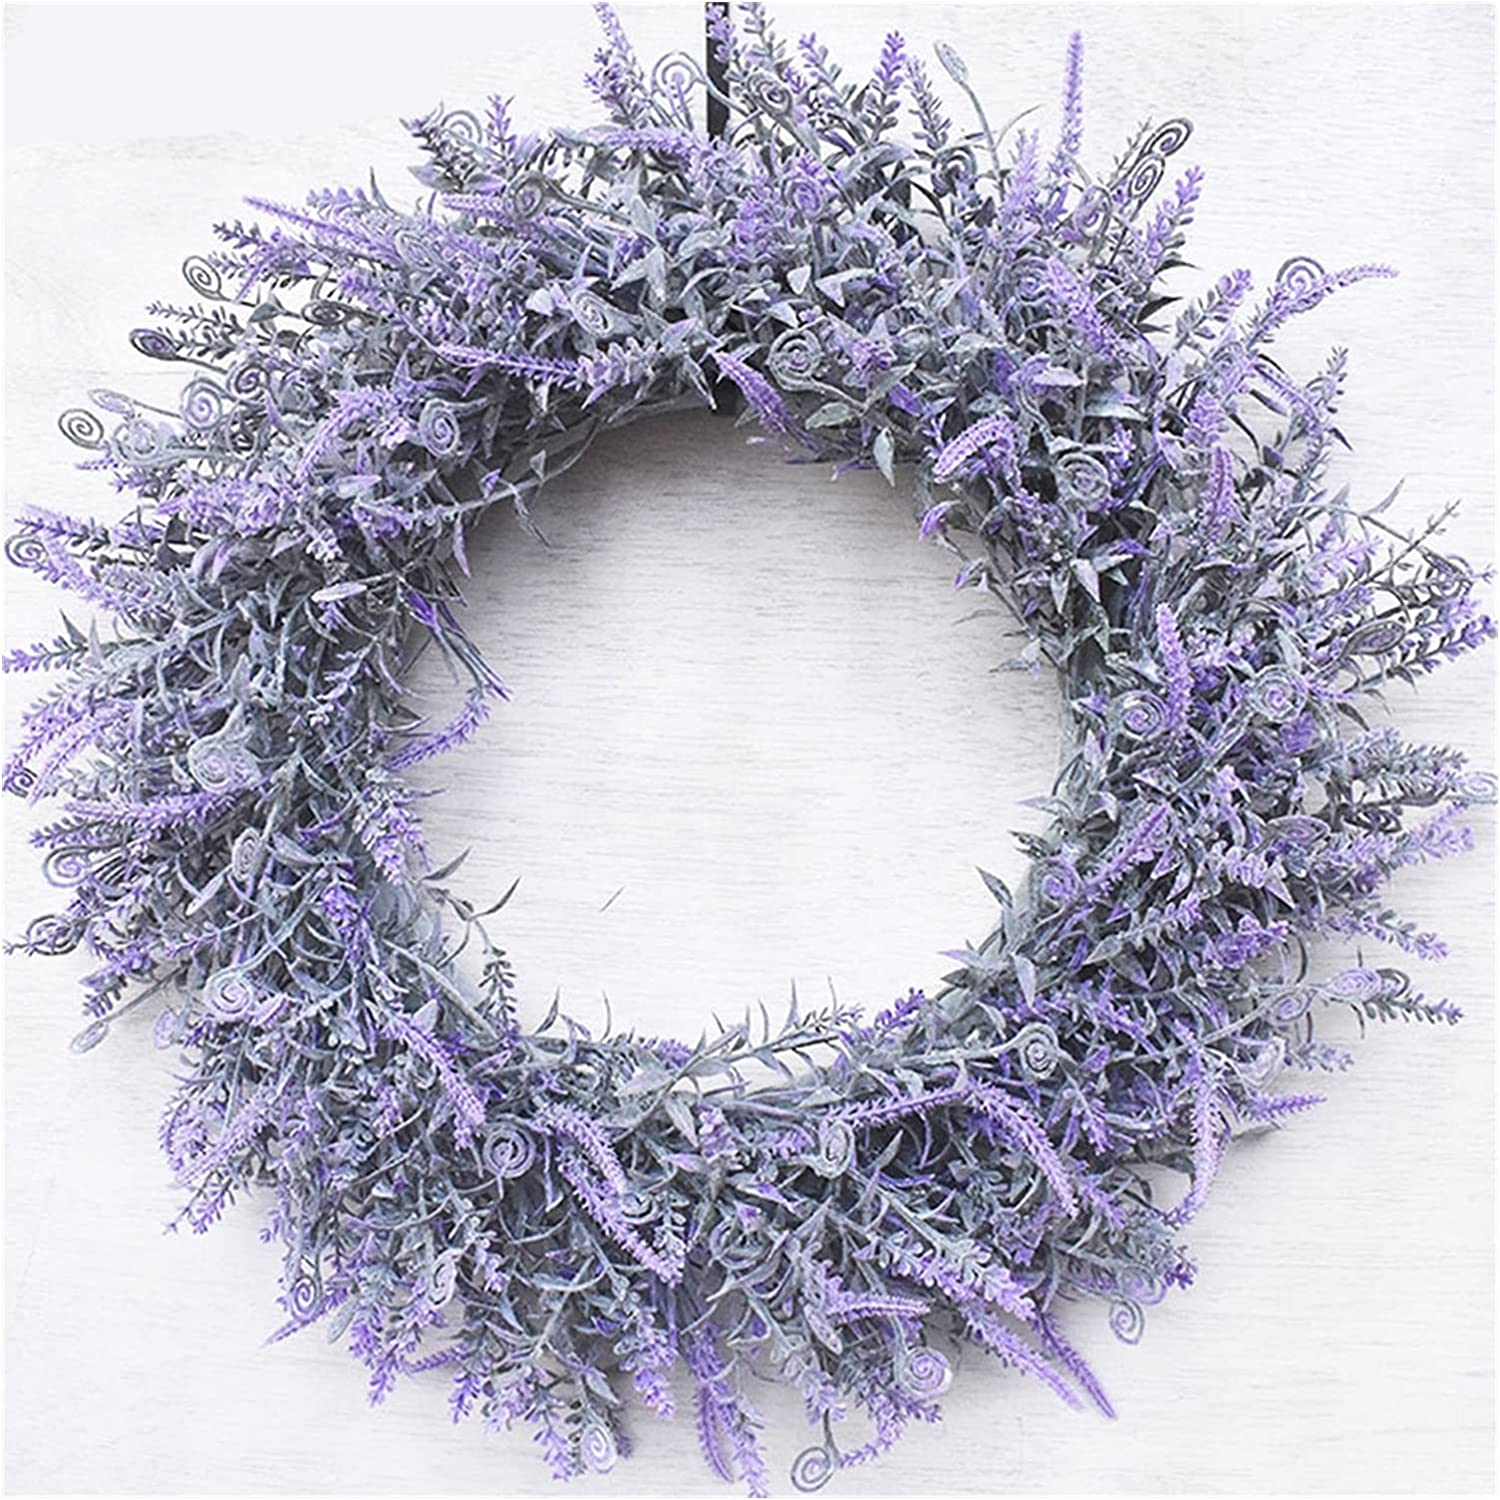 ZHAWE Wreath for Front Door Decor- 2021 Lavender Fall Flo 40% OFF Cheap Sale